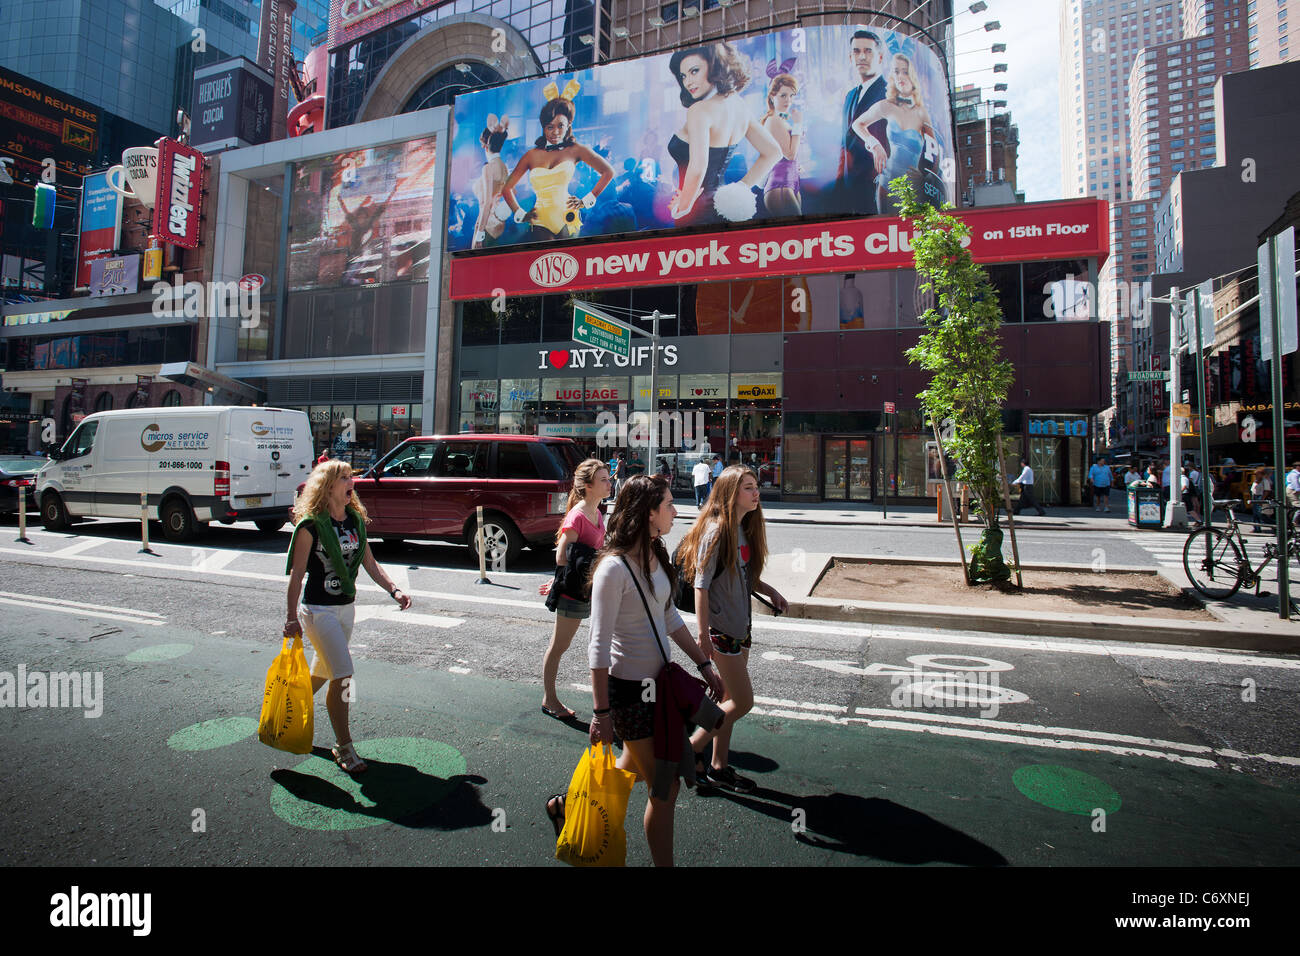 Advertising on billboards for the NBC television program, The Playboy Club - Stock Image